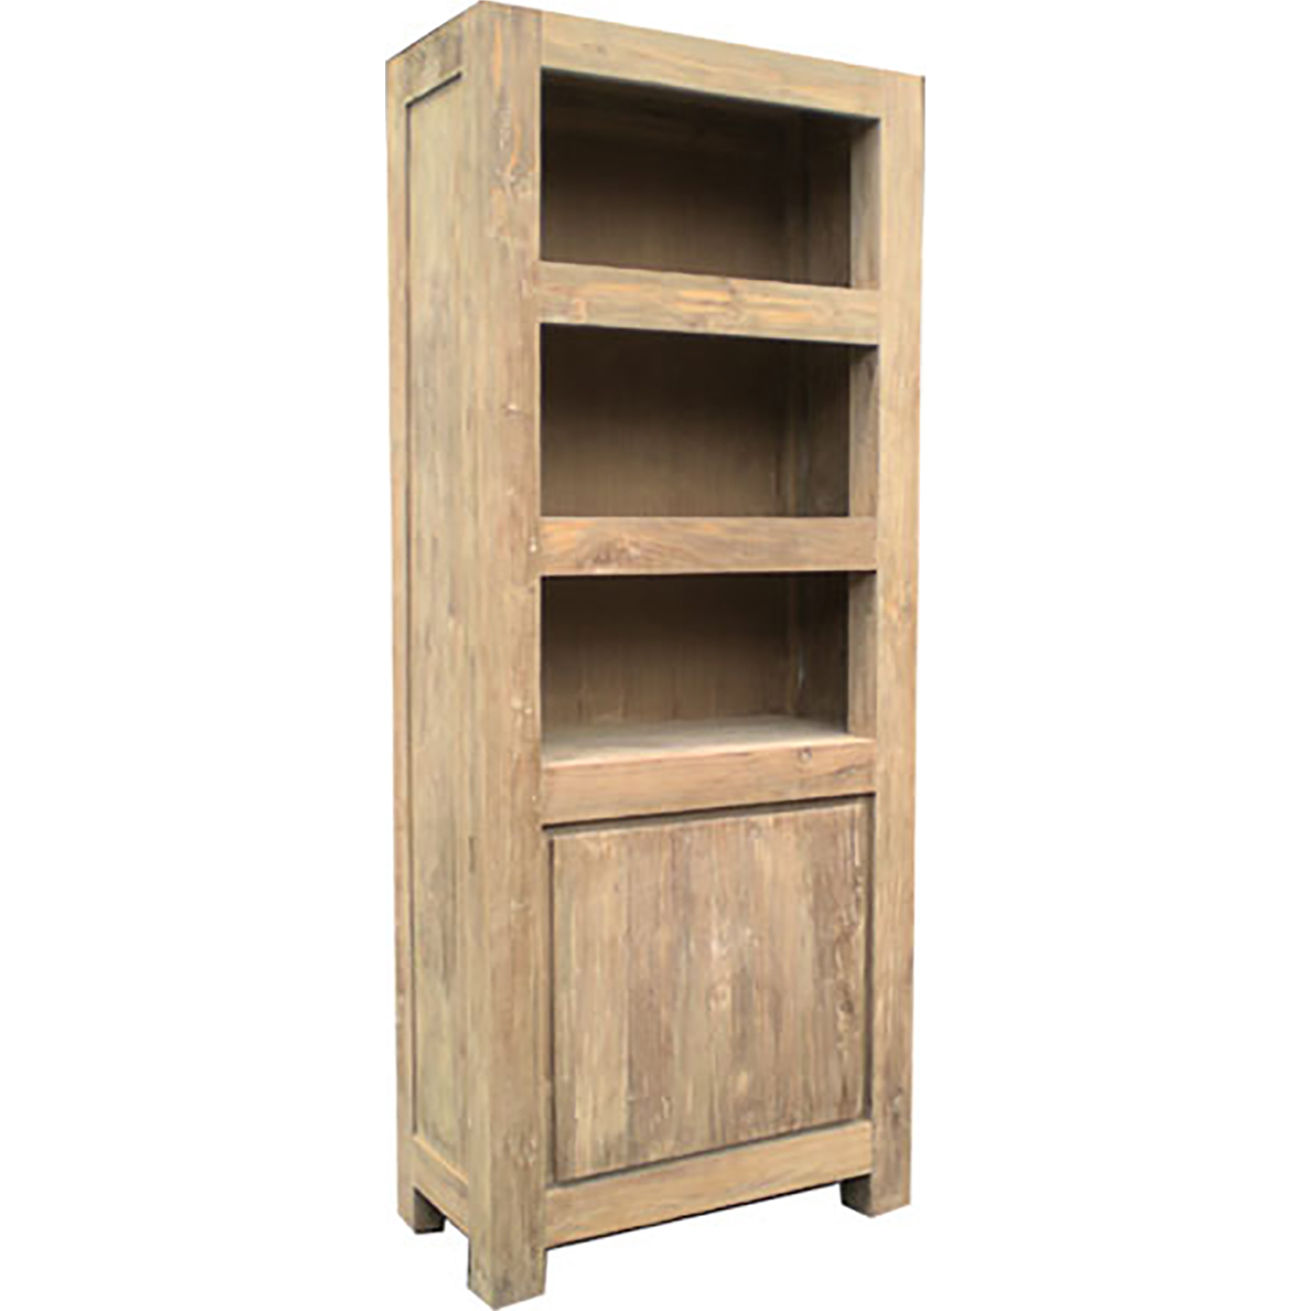 Stockholm Reclaimed Teak Bookcase In Distressed Recycled Teak By Padma S Plantation